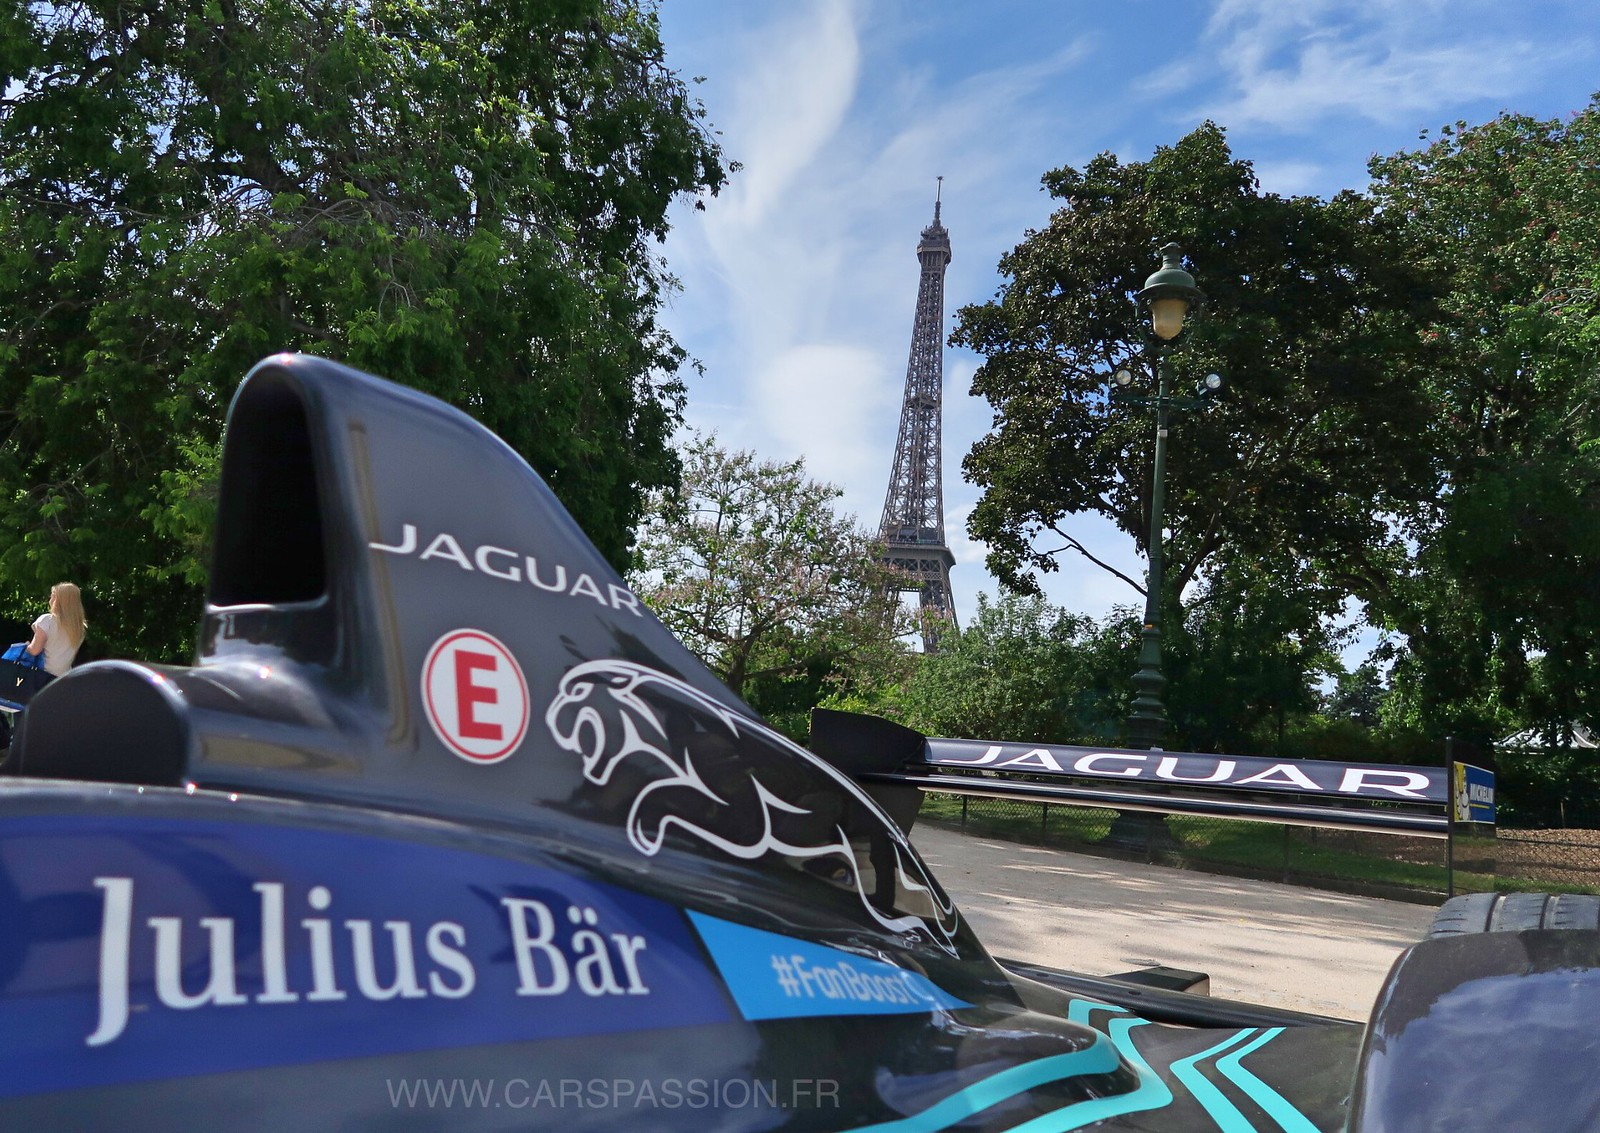 Formule E Jaguar Racing Panasonic Paris 2017